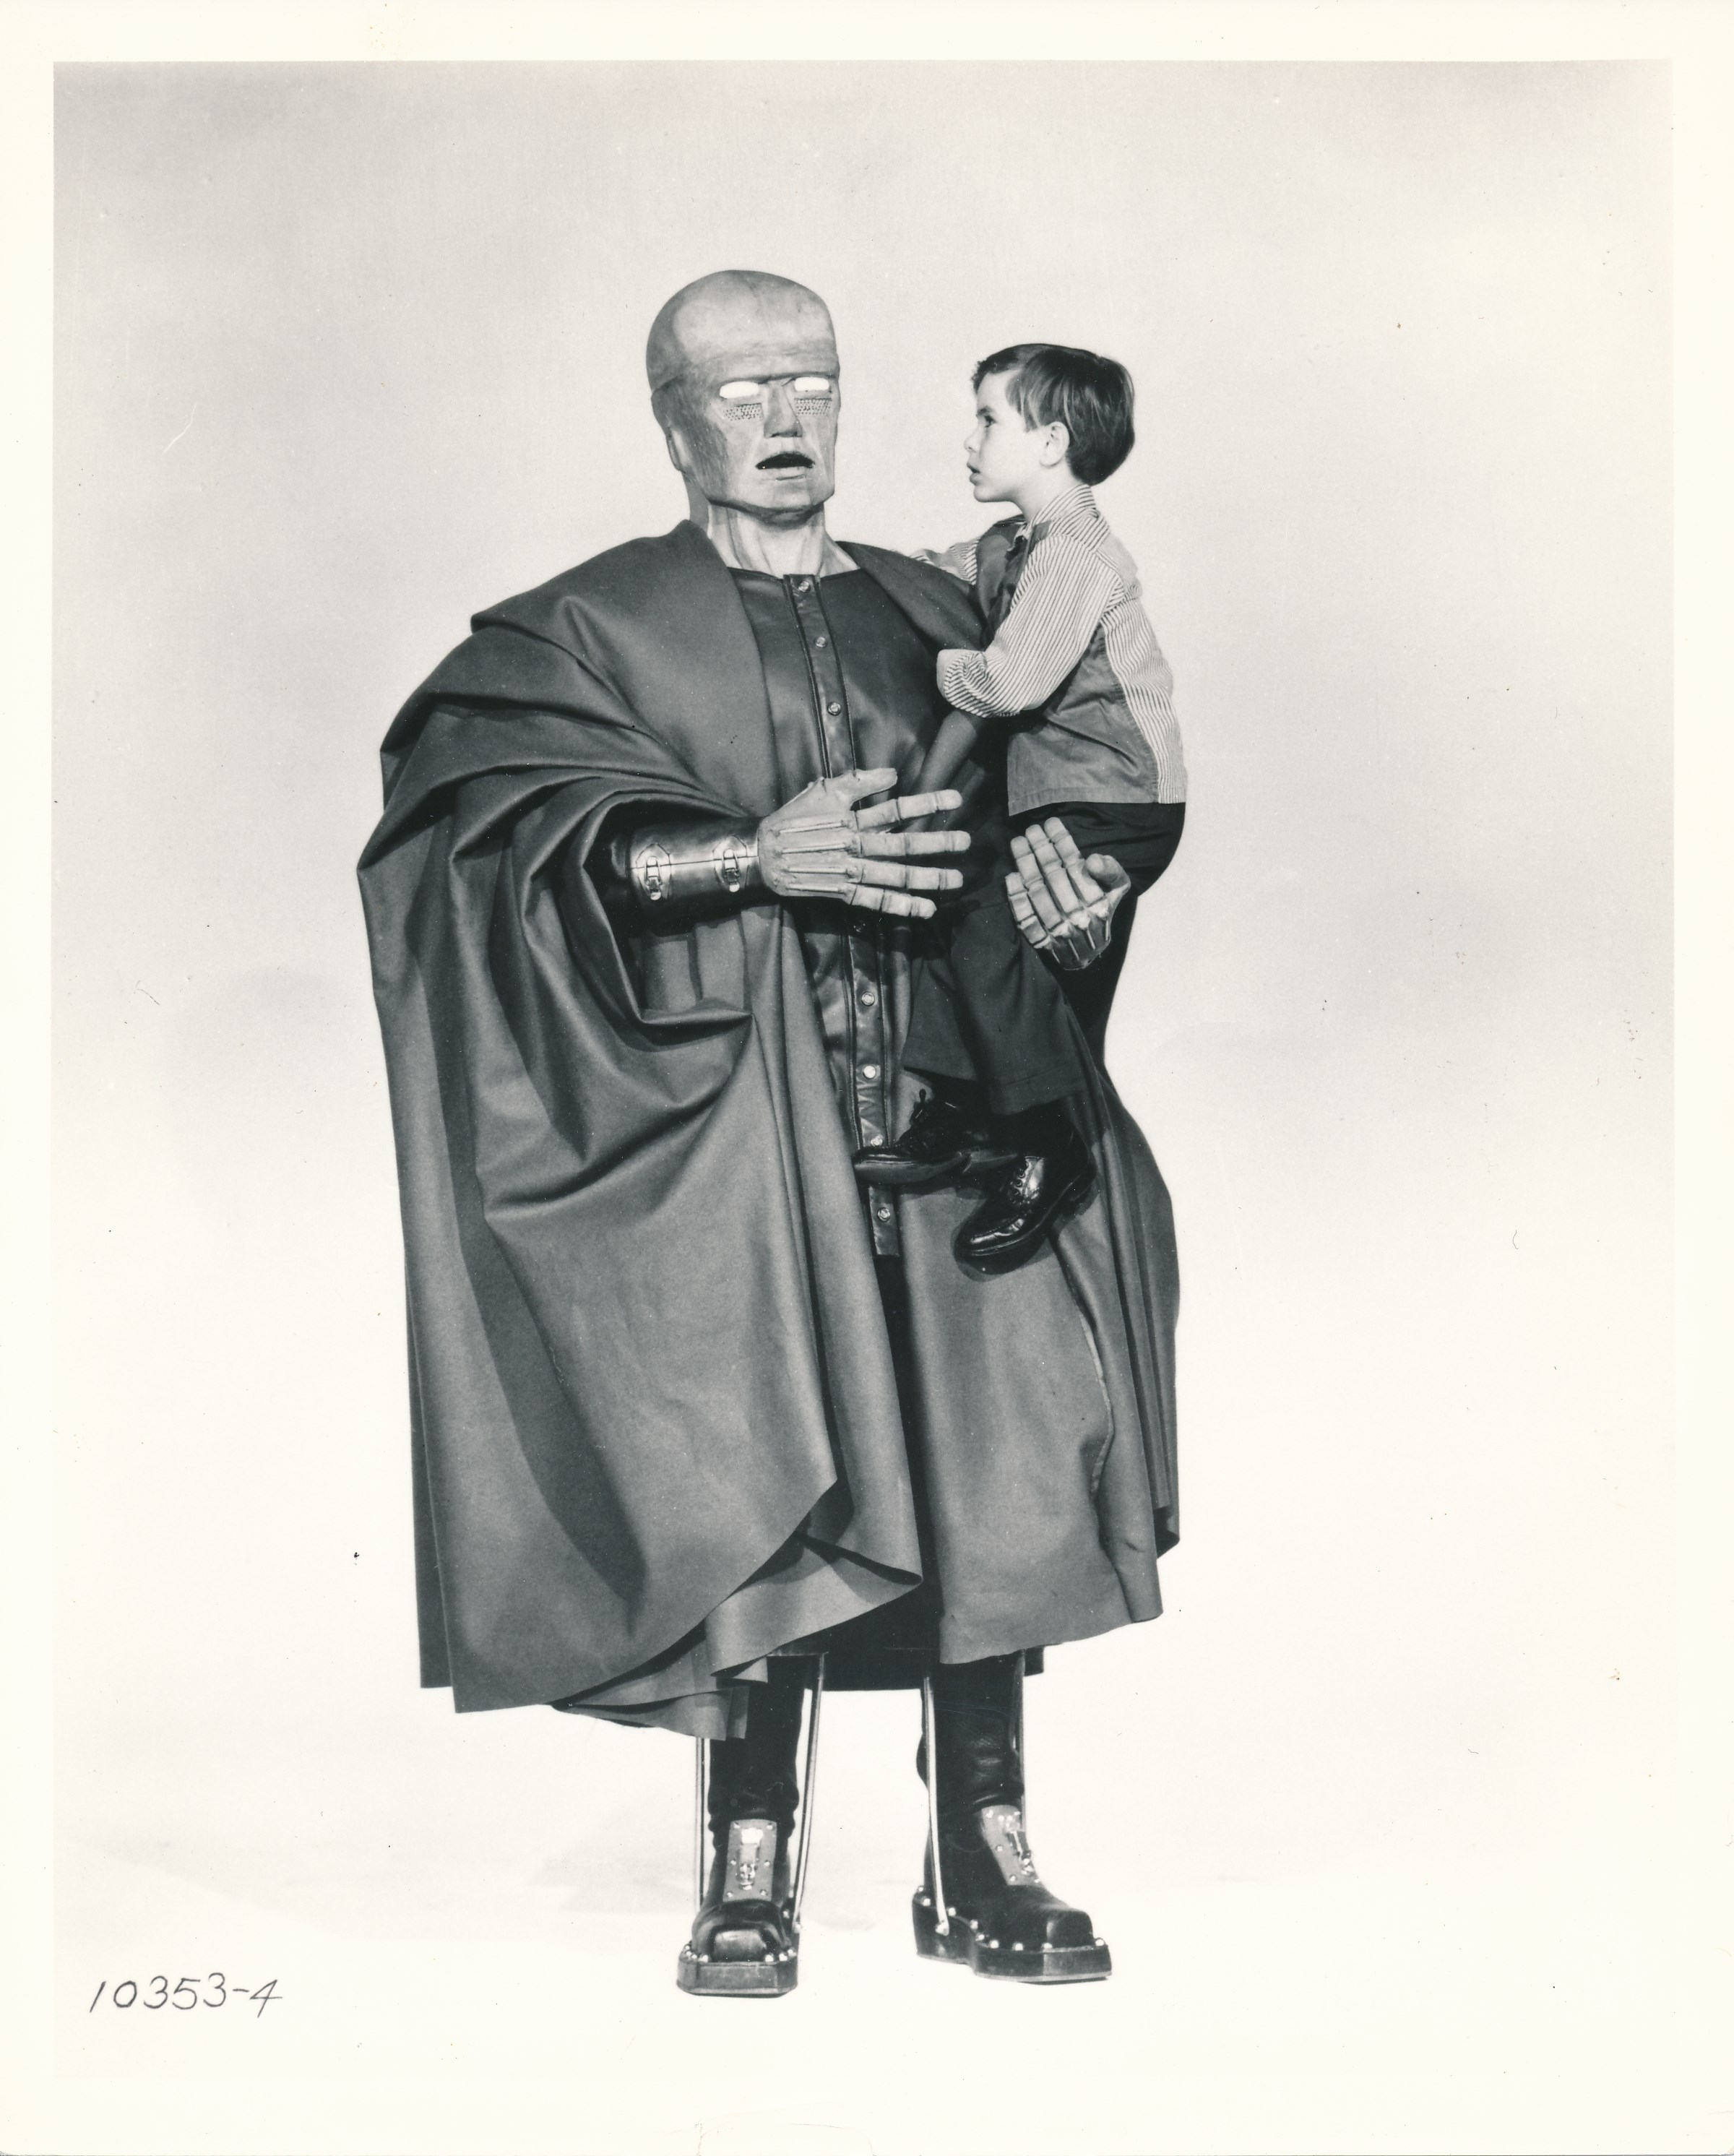 The Colossus of New York (1958) was an interesting sci-fi film about a scientist whose brain is transplanted into the indestructible body  of  a giant android. This movie has a stellar pedigree. The fine genre cast included Mala Powers, Otto Kruger, Ross Martin and Charles Herbert. It was directed by Eugene Lourie, who also helmed Gorgo, The Beast from 20,000 Fathoms and The Giant Behemoth. William Alland, veteran of many fine Universal science fiction films of the 1950s, produced. Veteran spfx artist John Fulton created the camera trick work. (c) Paramount